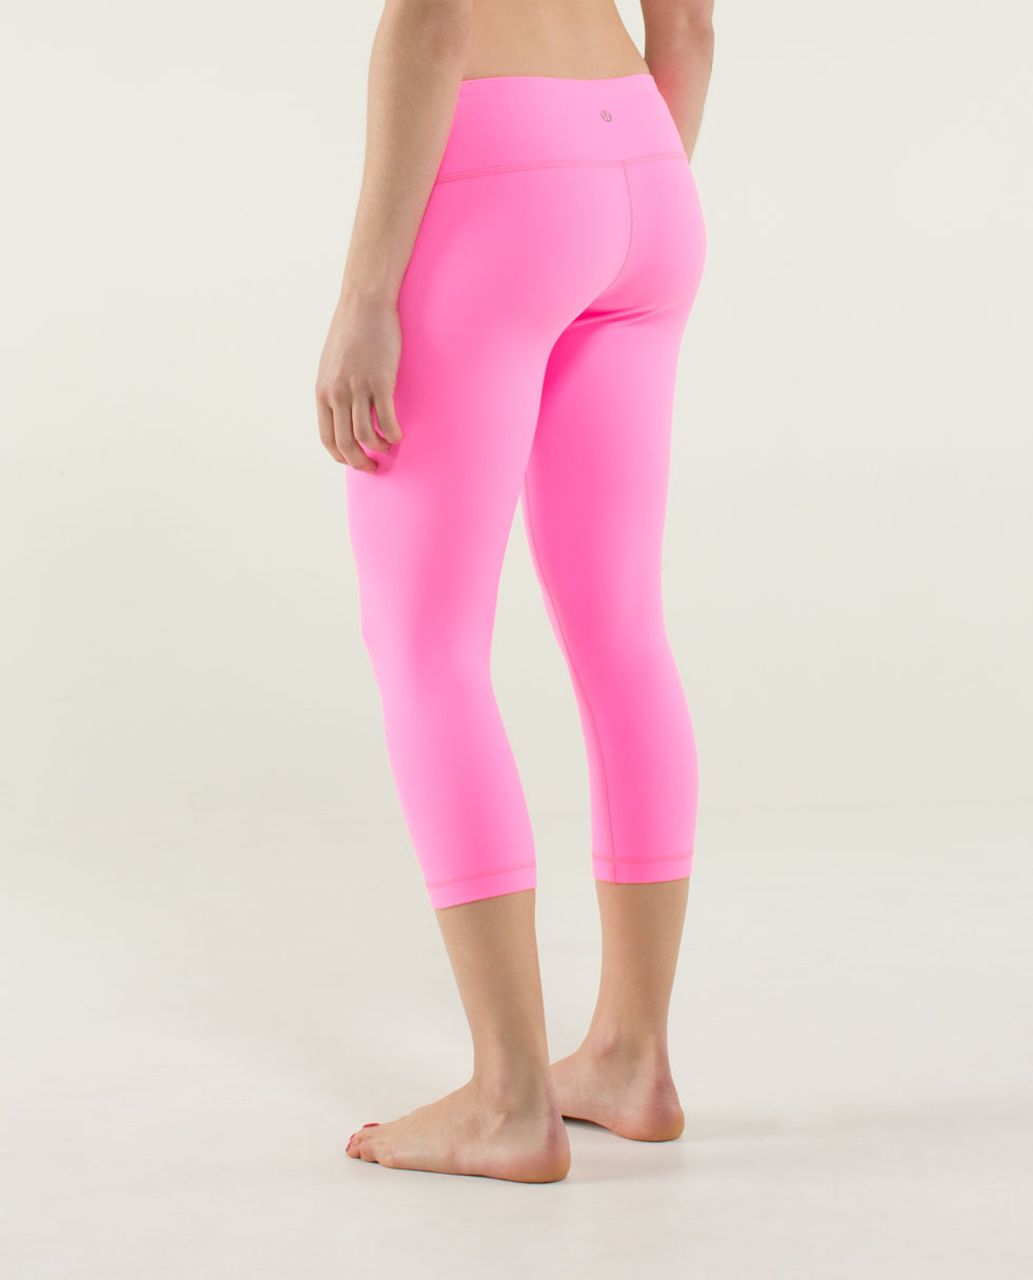 Lululemon Wunder Under Crop *Full-On Luon - Zing Pink Light